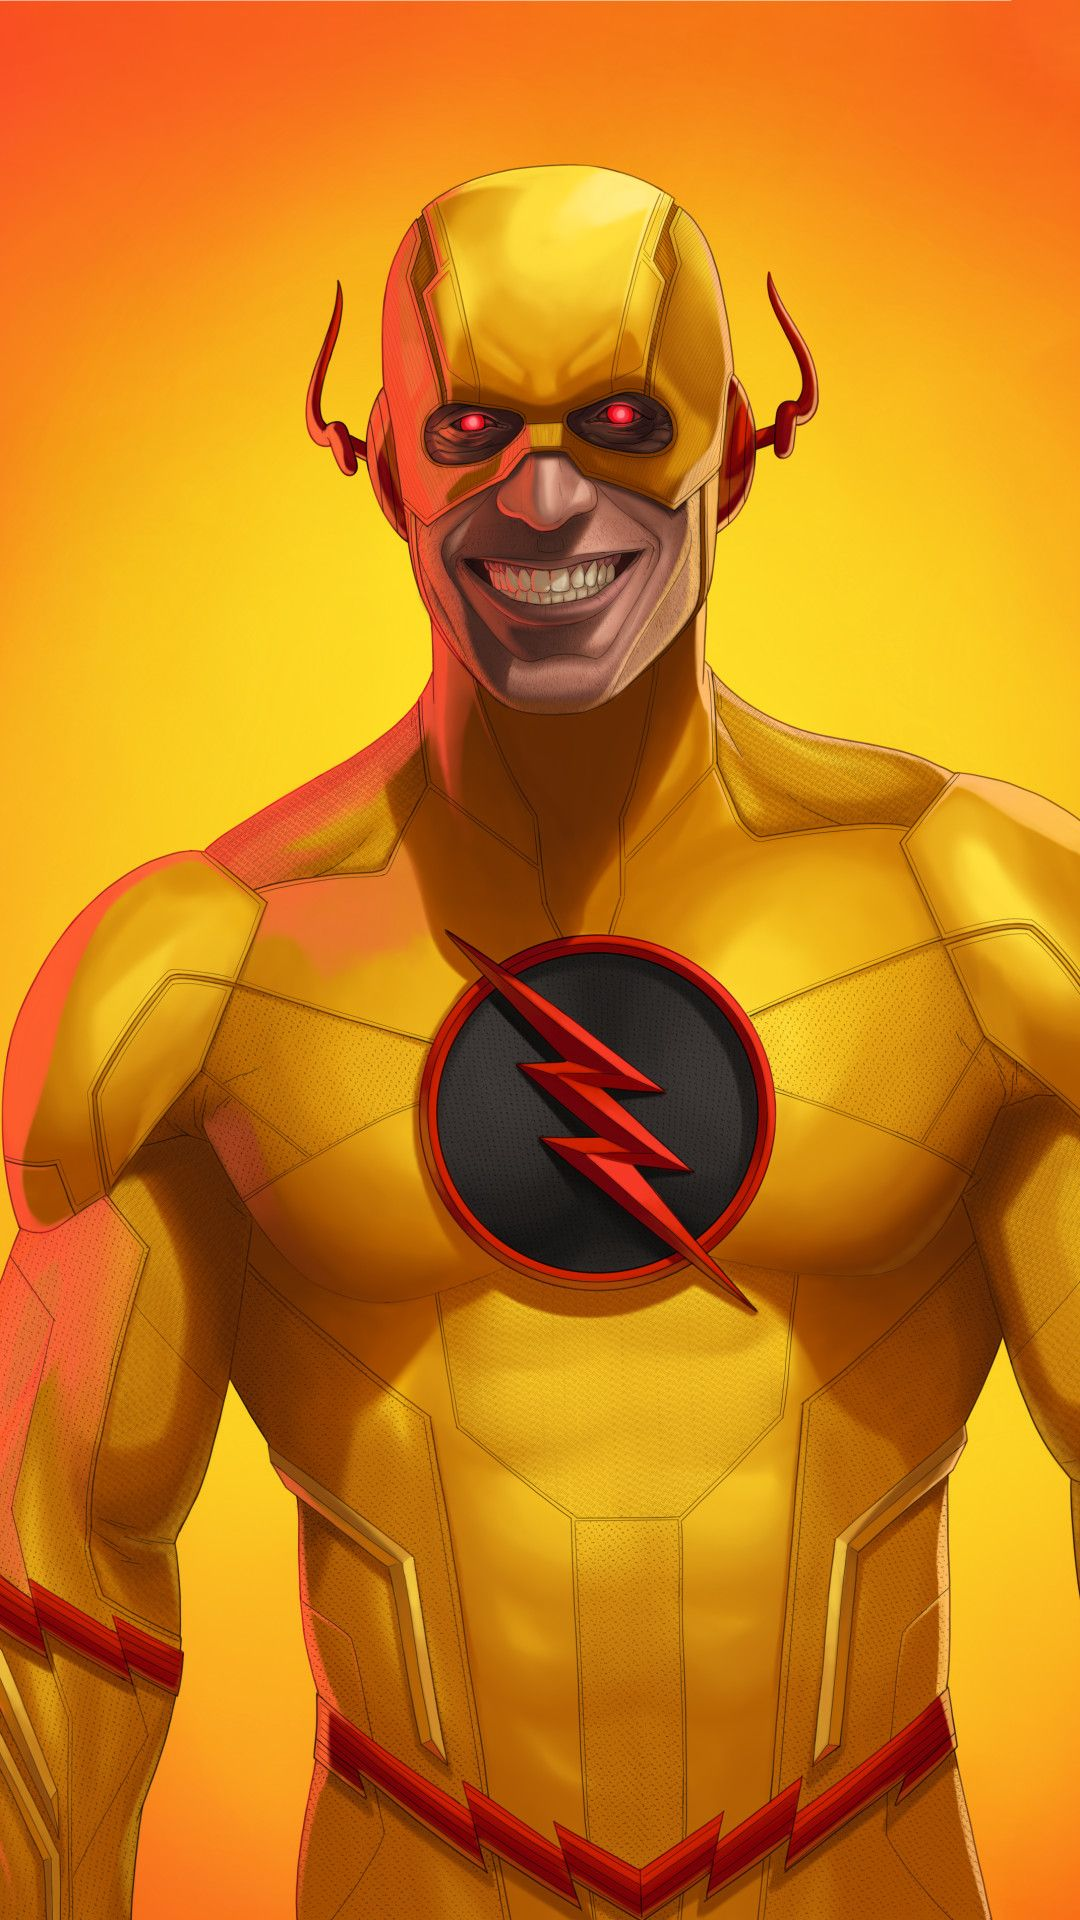 Reverse Flash Art Mobile Wallpaper Iphone Android Samsung Pixel Xiaomi In 2020 Flash Art Flash Comics Reverse Flash